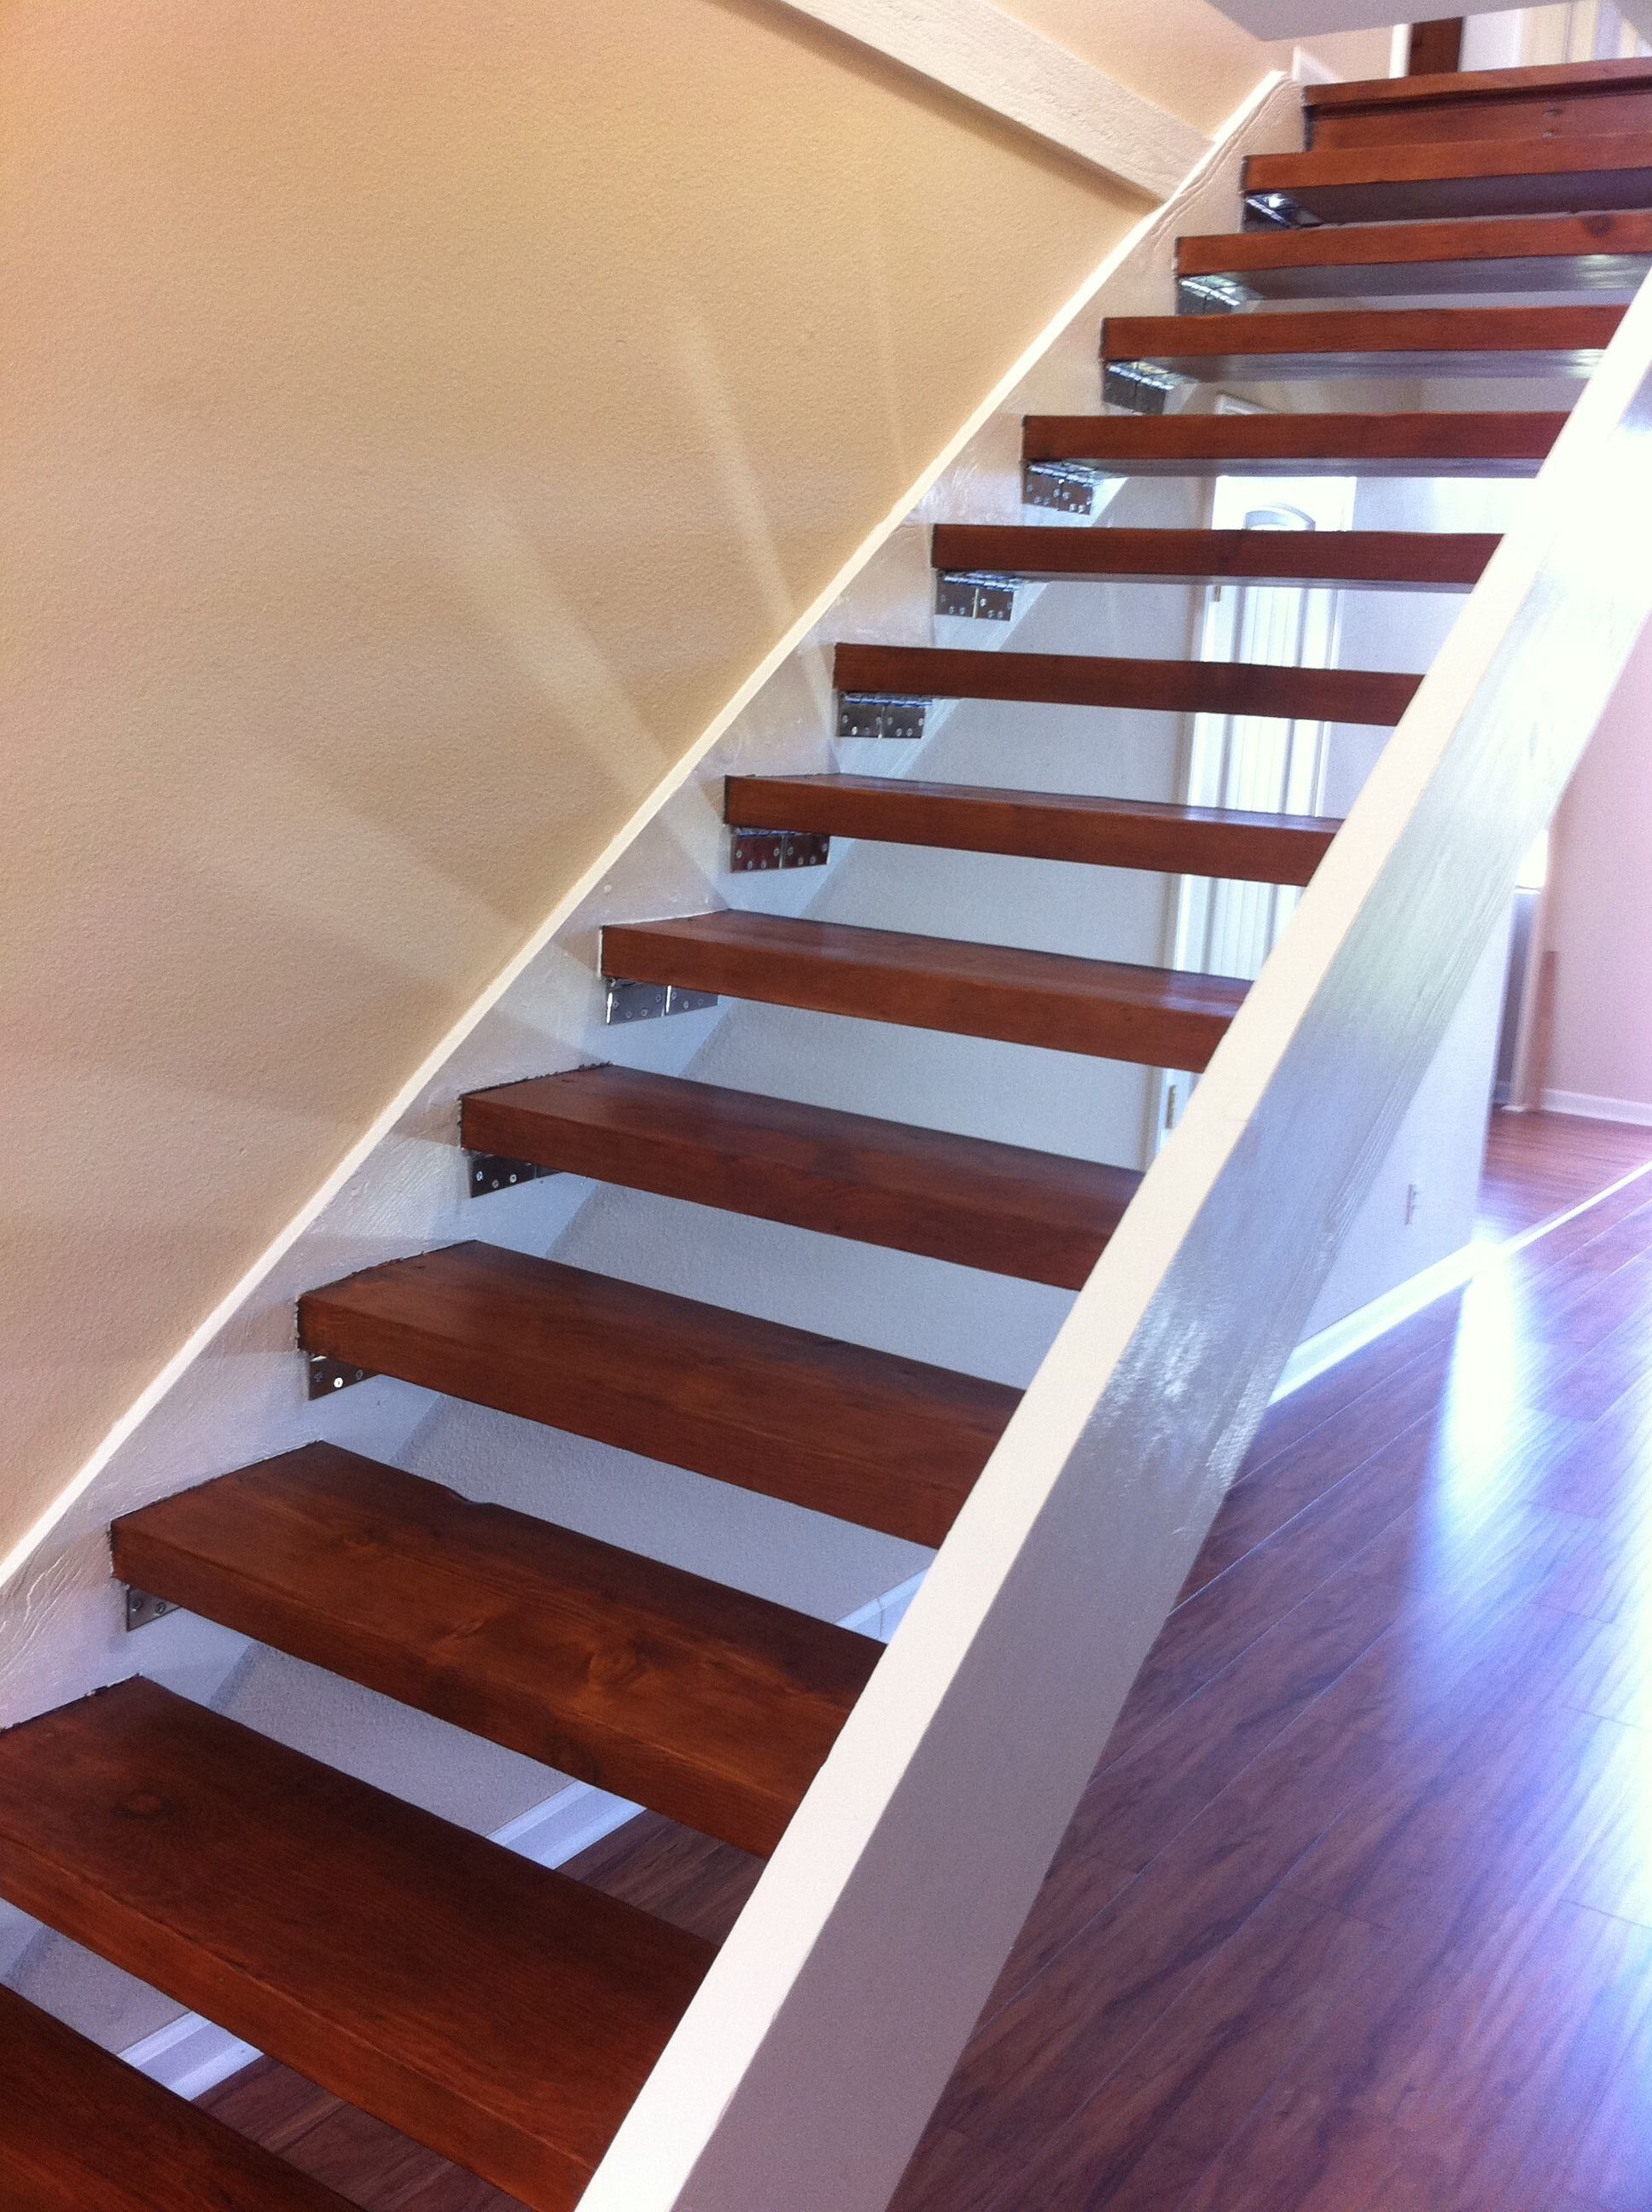 Open Staircase Design Cliff Didn 39t Care For The 4k 43 Quote He Initially Received